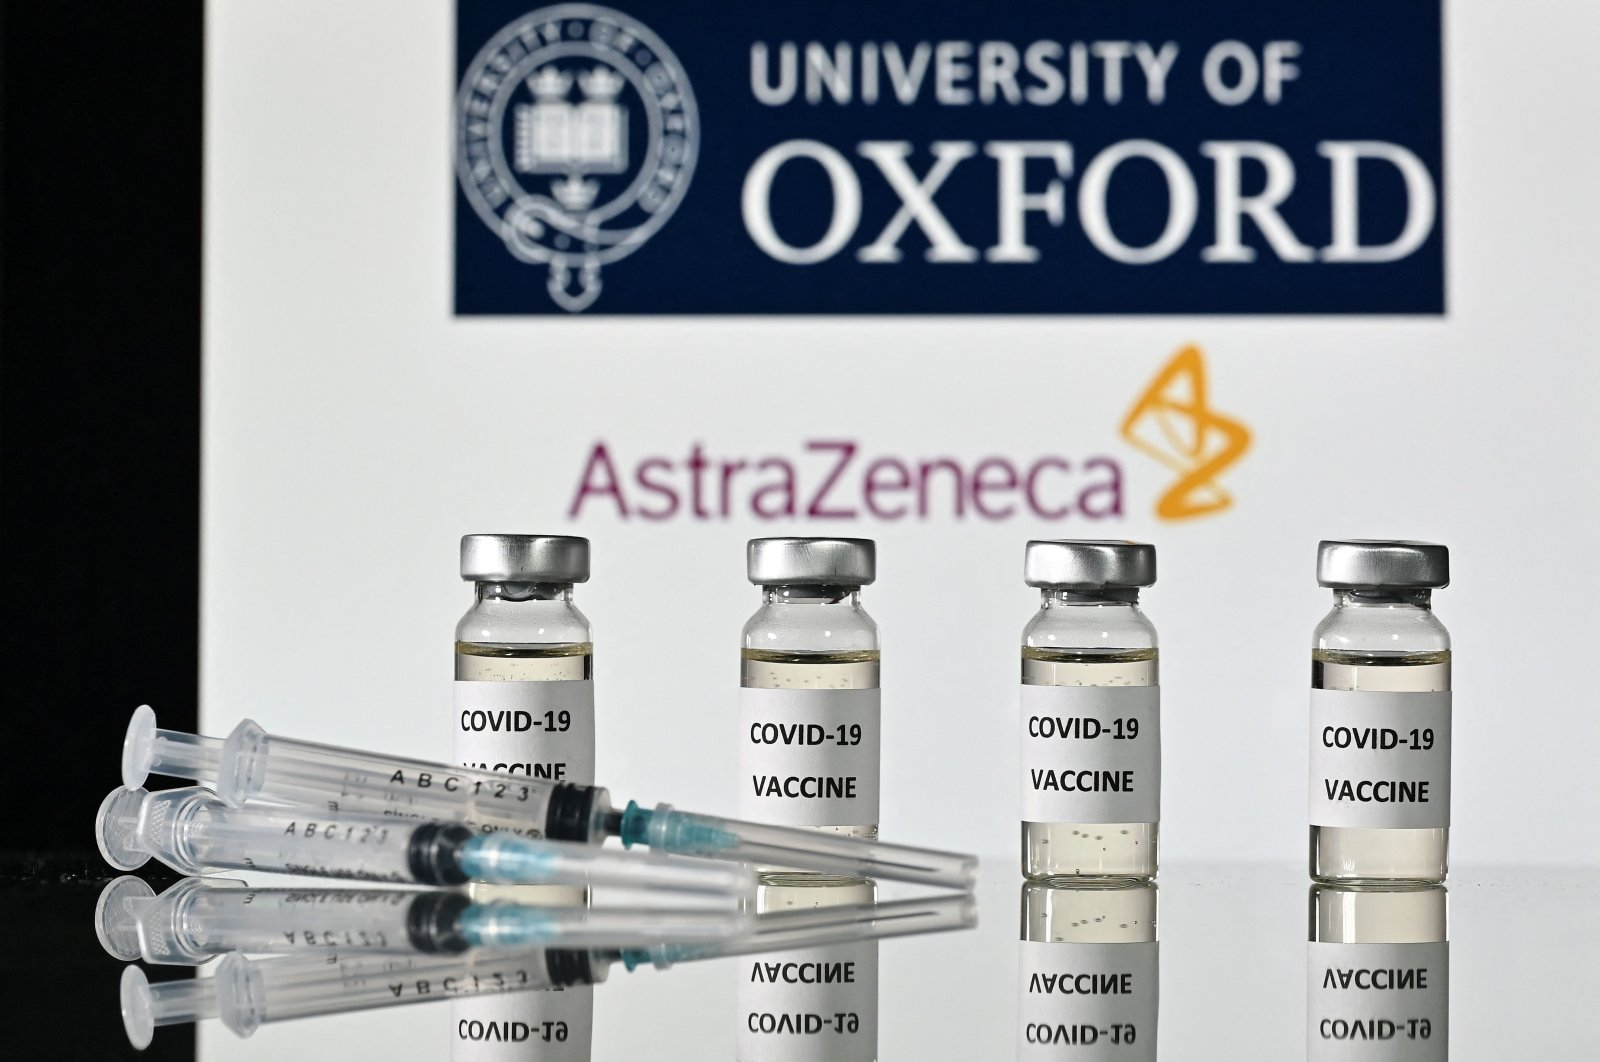 An illustration of vials and syringes in front of the logo of the University of Oxford and its partner British pharmaceutical company AstraZeneca, on Nov. 17, 2020. (AFP Photo)